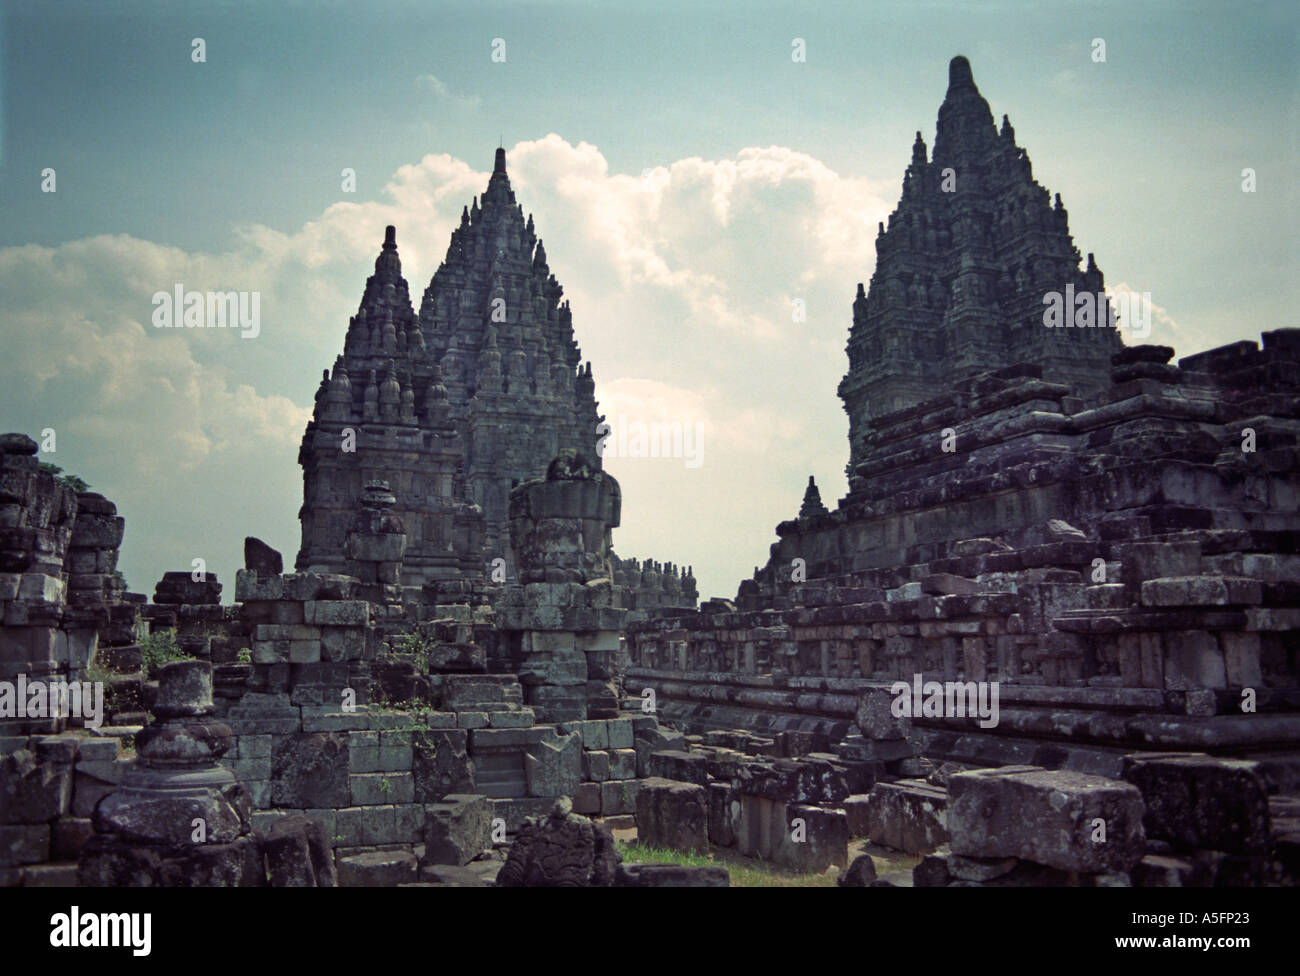 Prambanan in Central Java is the largest Hindu temple compound in Indonesia UNESCO Site Central temple 47m Java Indonesia - Stock Image